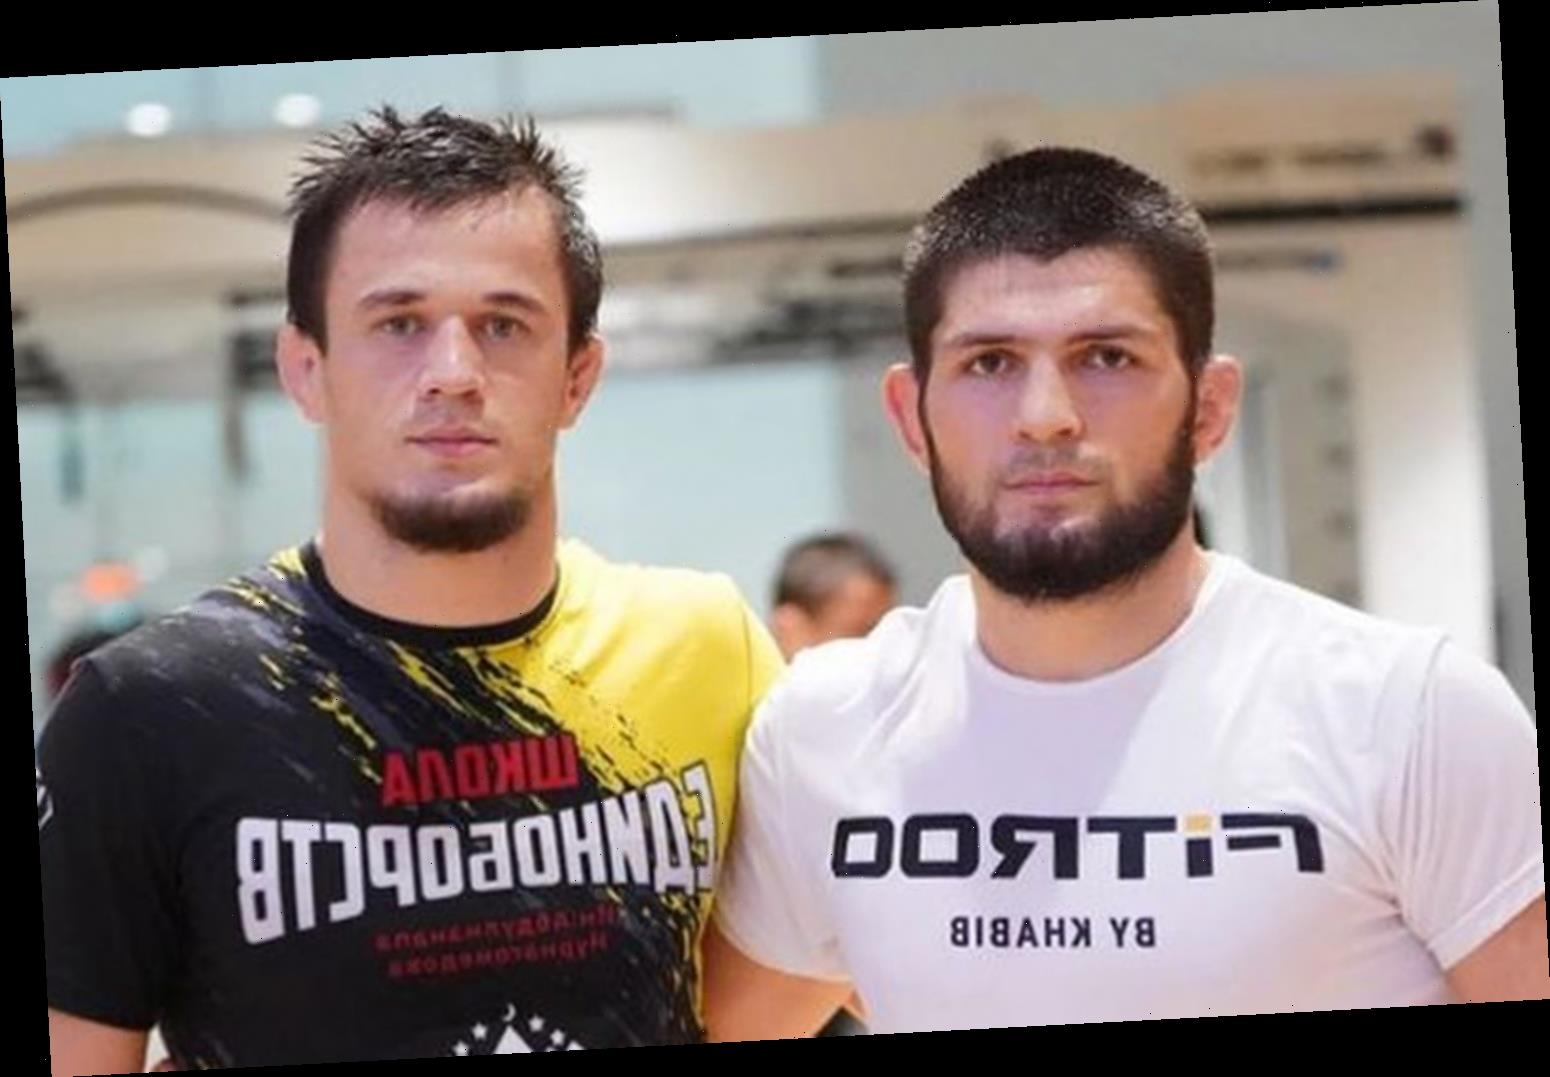 Khabib's cousin Usman Nurmagomedov – tipped to be BETTER than UFC champ – signs multi-fight Bellator deal